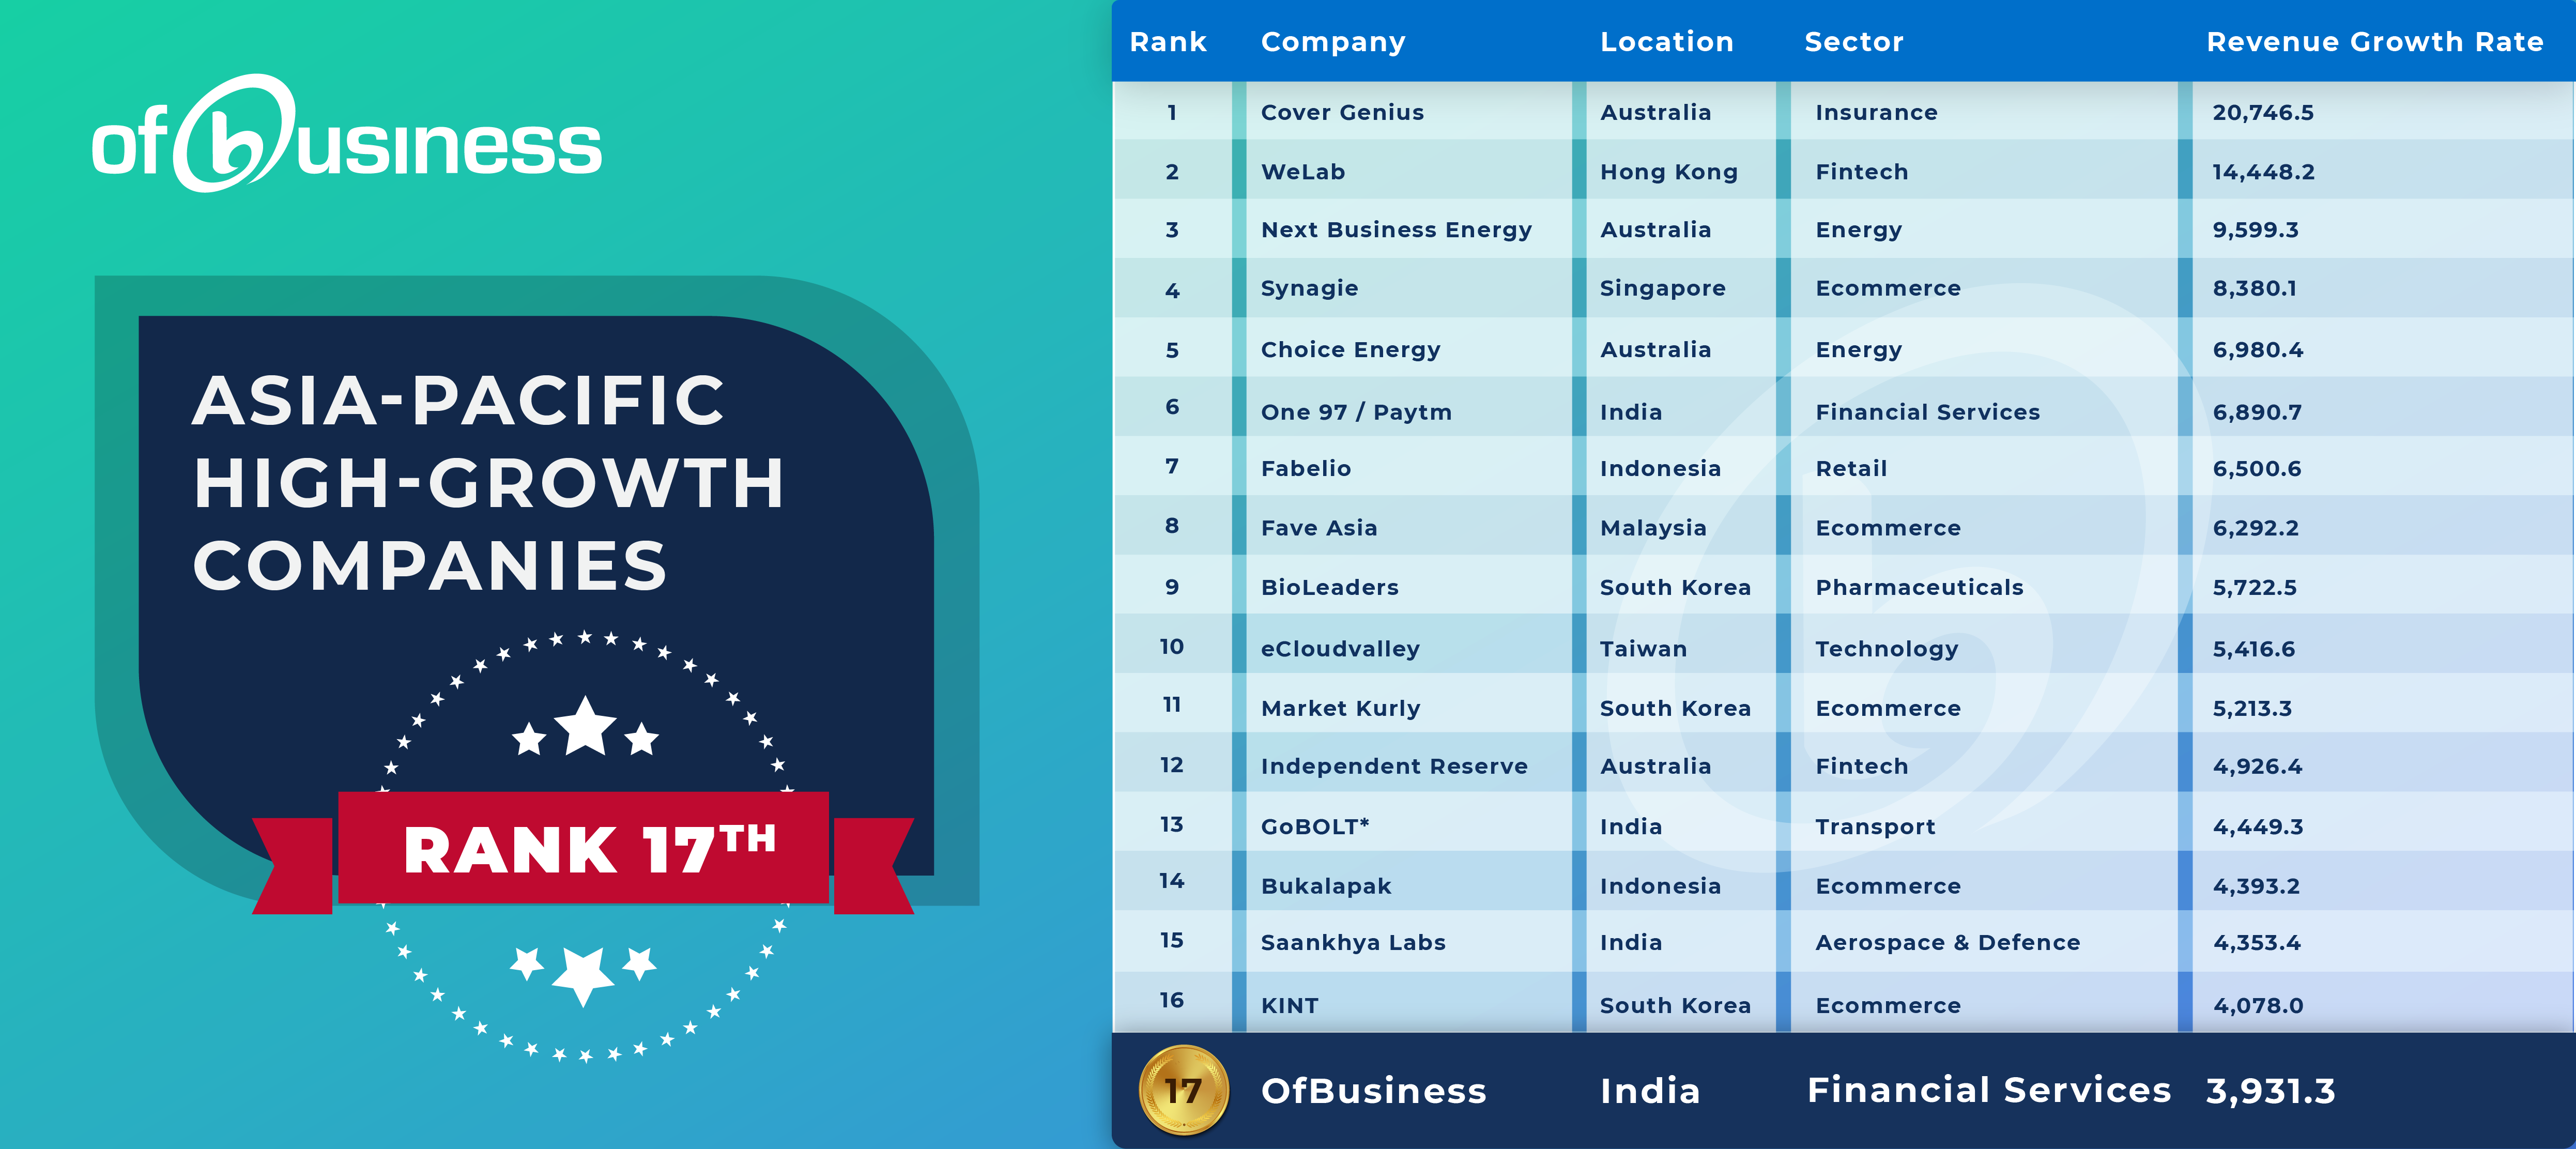 FT ranking: Asia-Pacific High-Growth Companies